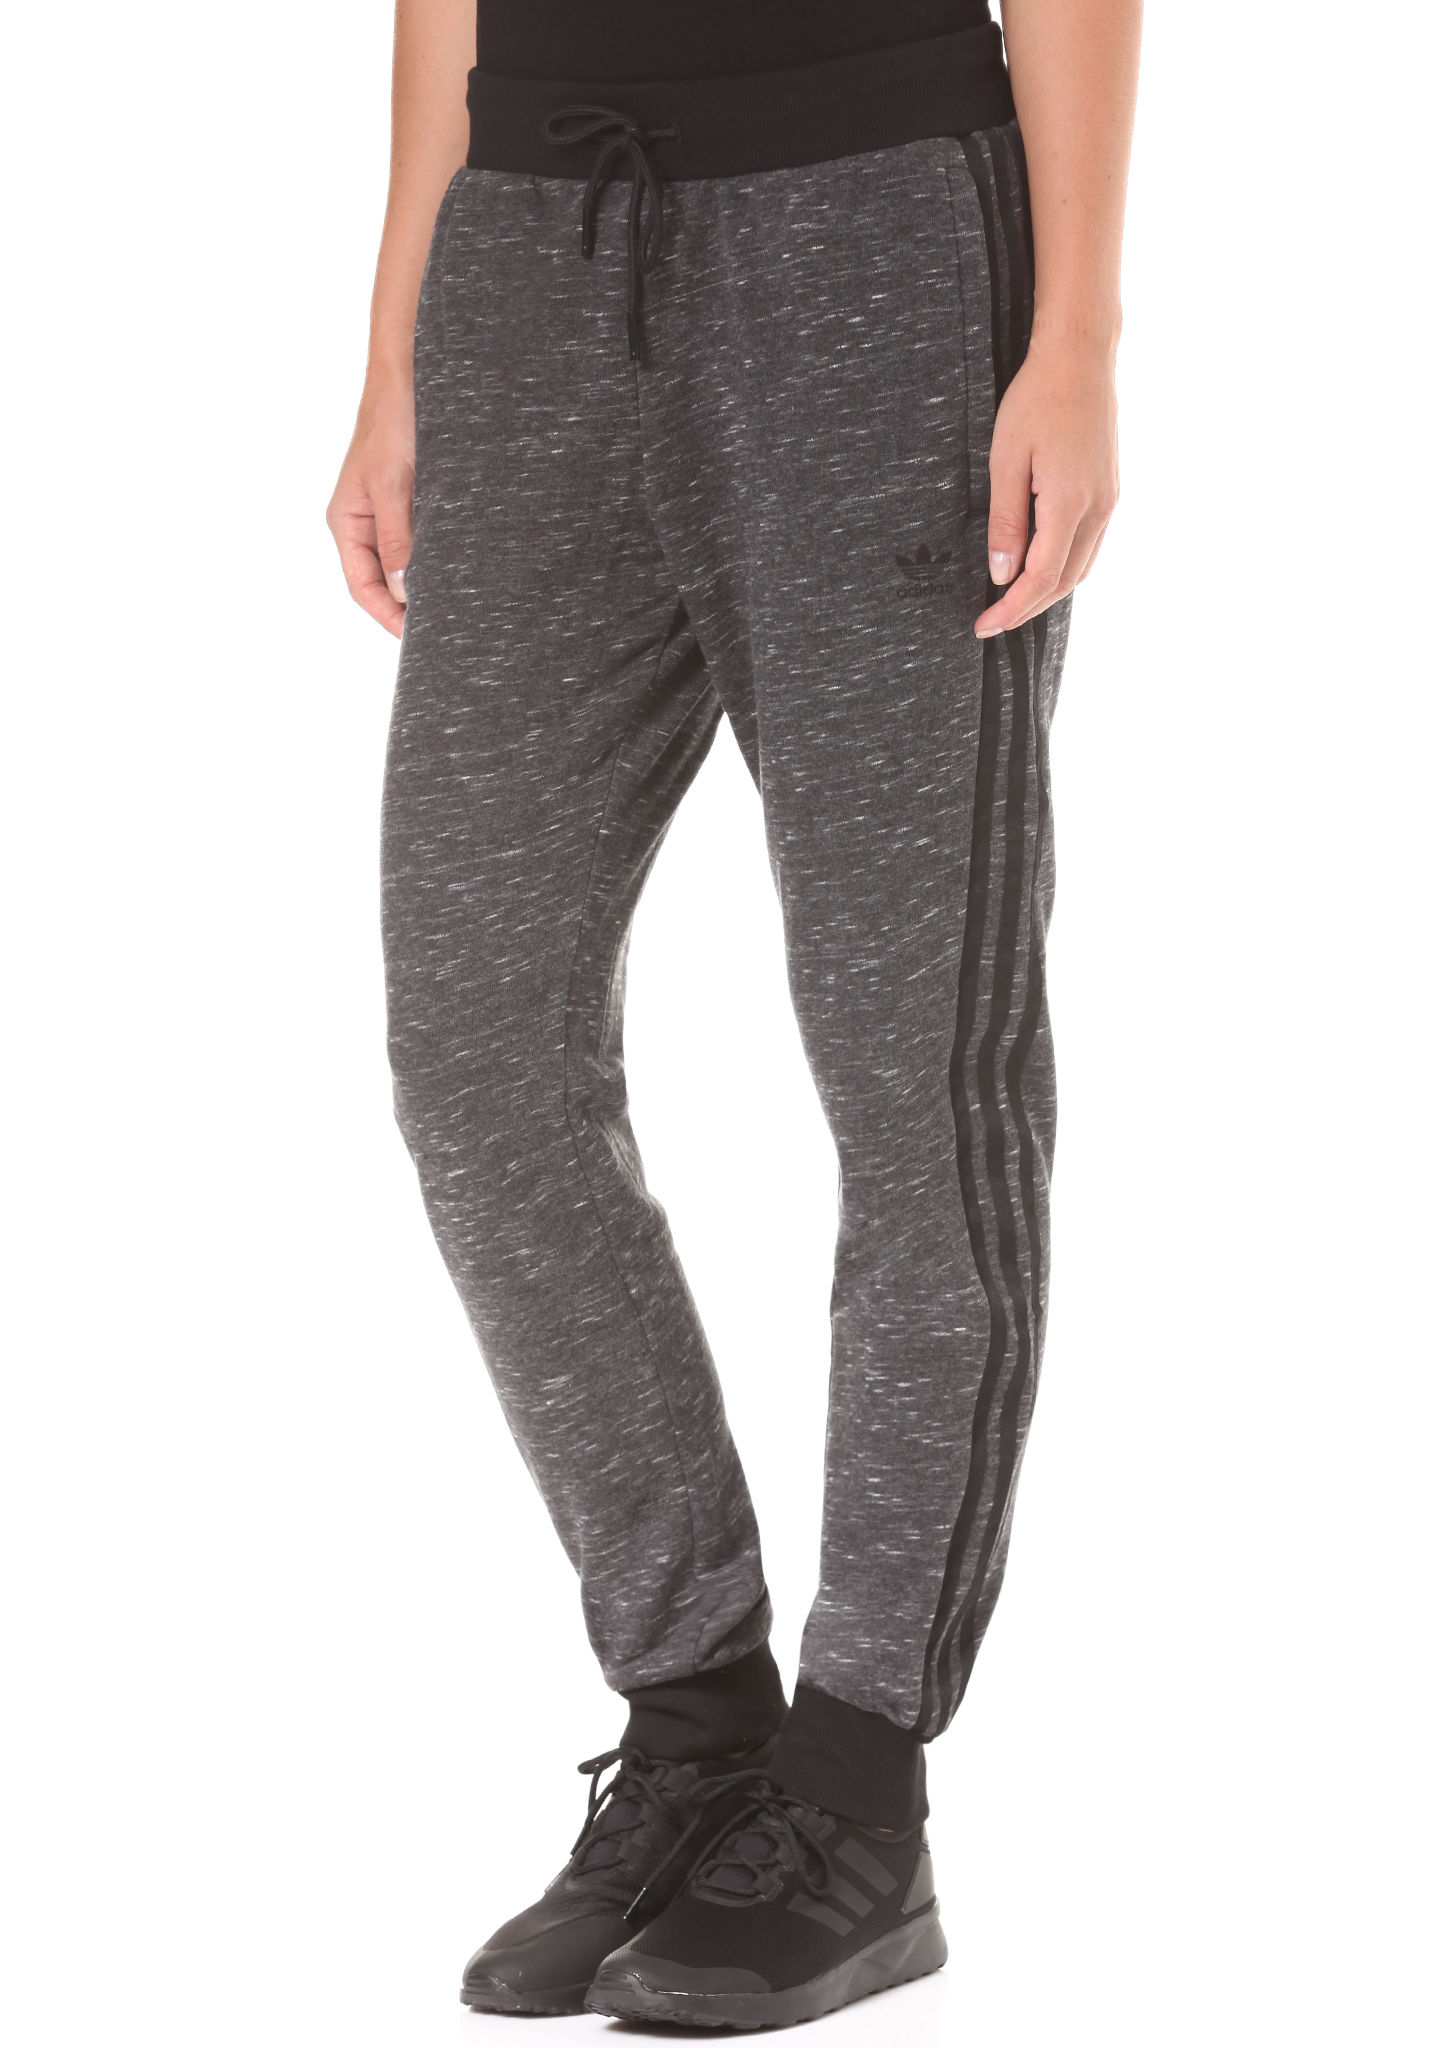 Pantalon Gris Adidas Cuffed Tp Femme Pour Originals Regular Yvf6g7by